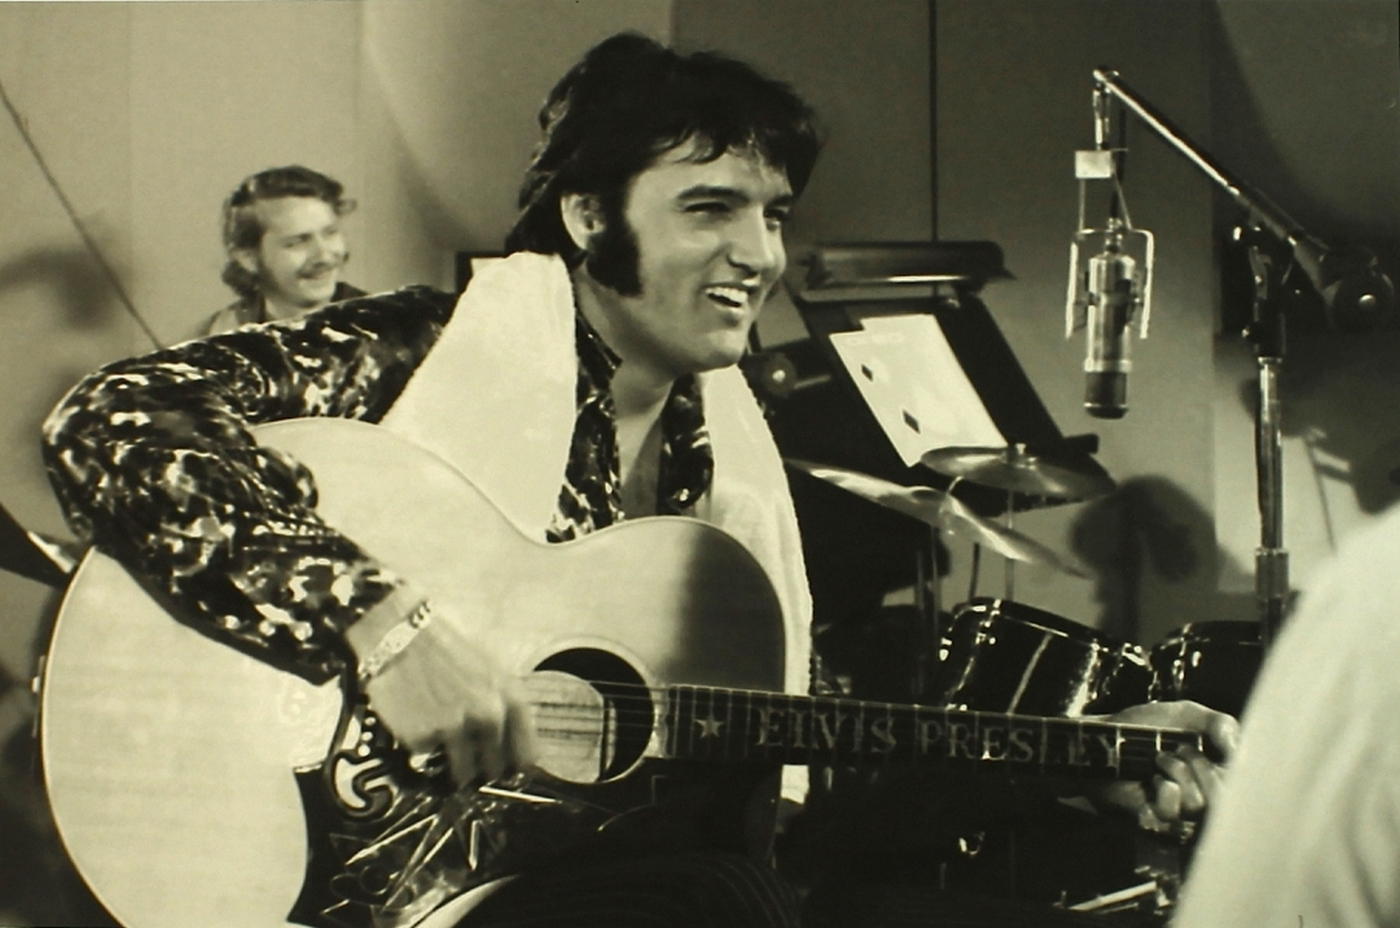 main_1-Hulton-Getty-Collection-That-s-The-Way-It-Is-Elvis-Presley-Limited-Edition-16x23-Giclee-from-Original-Negative-70-275-PristineAuction.com_